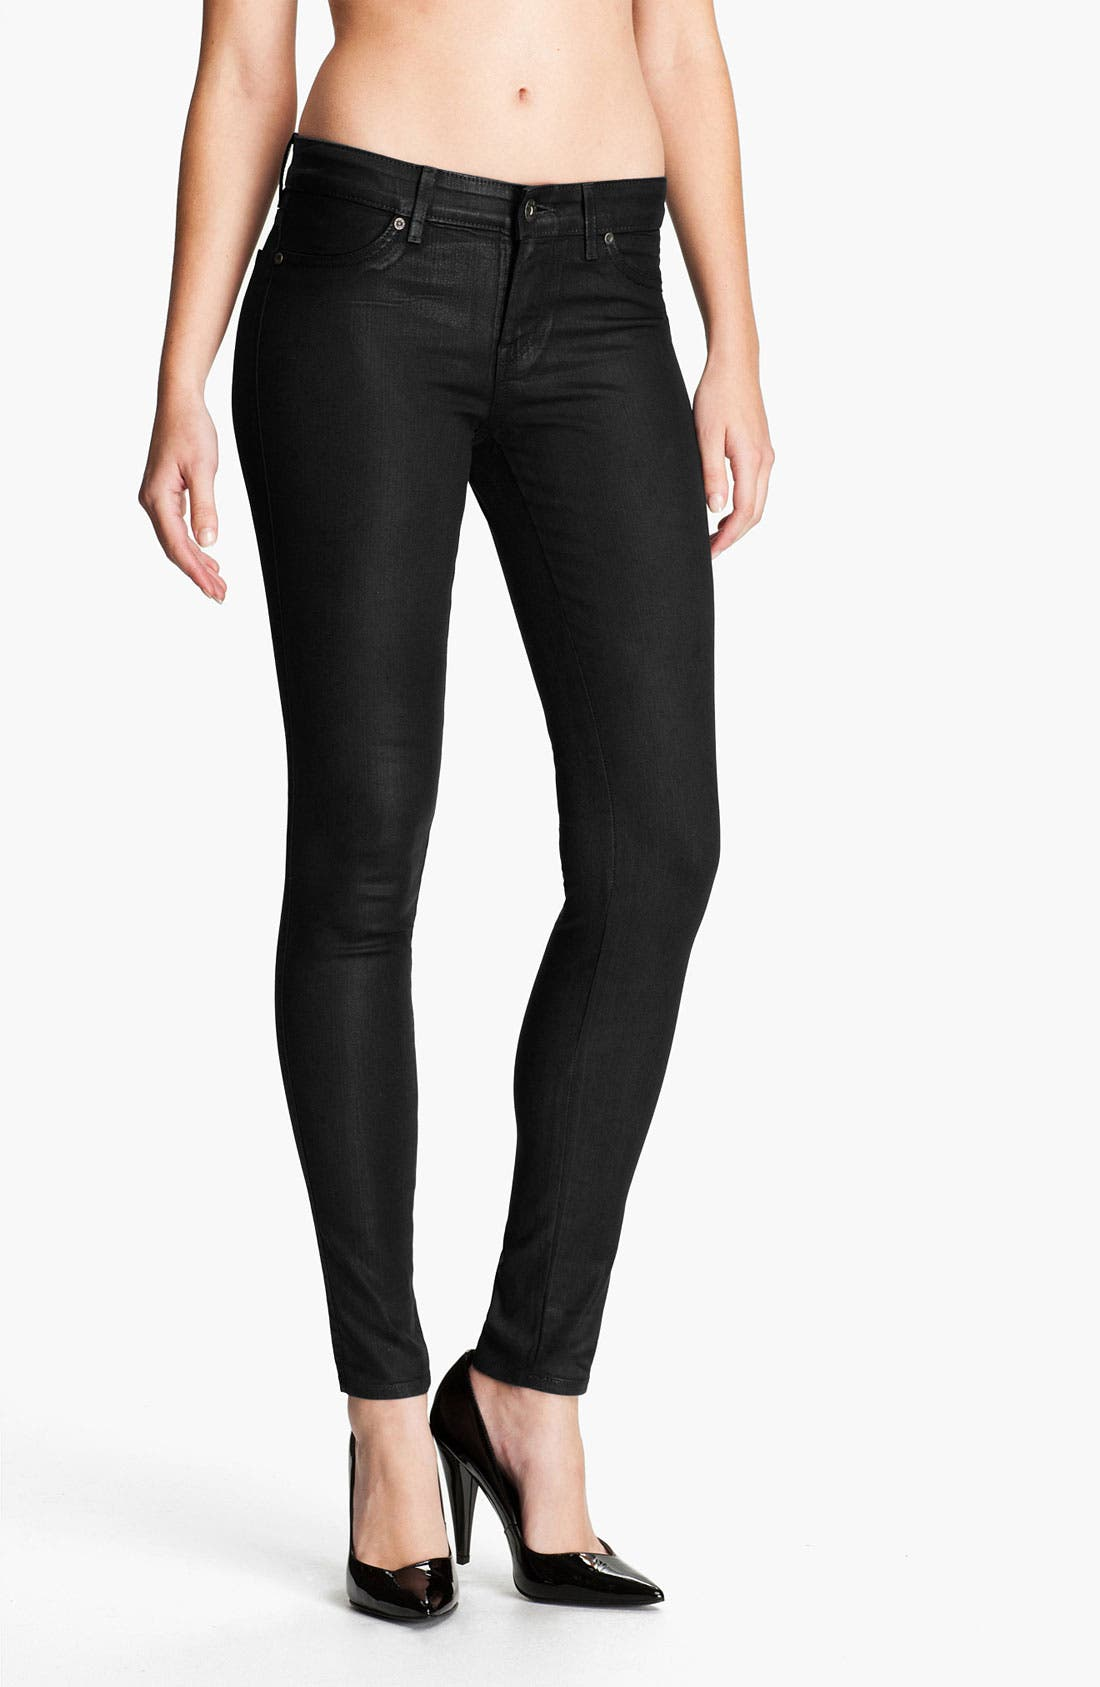 Main Image - Rich & Skinny 'Legacy Leather' Faux Leather Skinny Jeans (Tar)